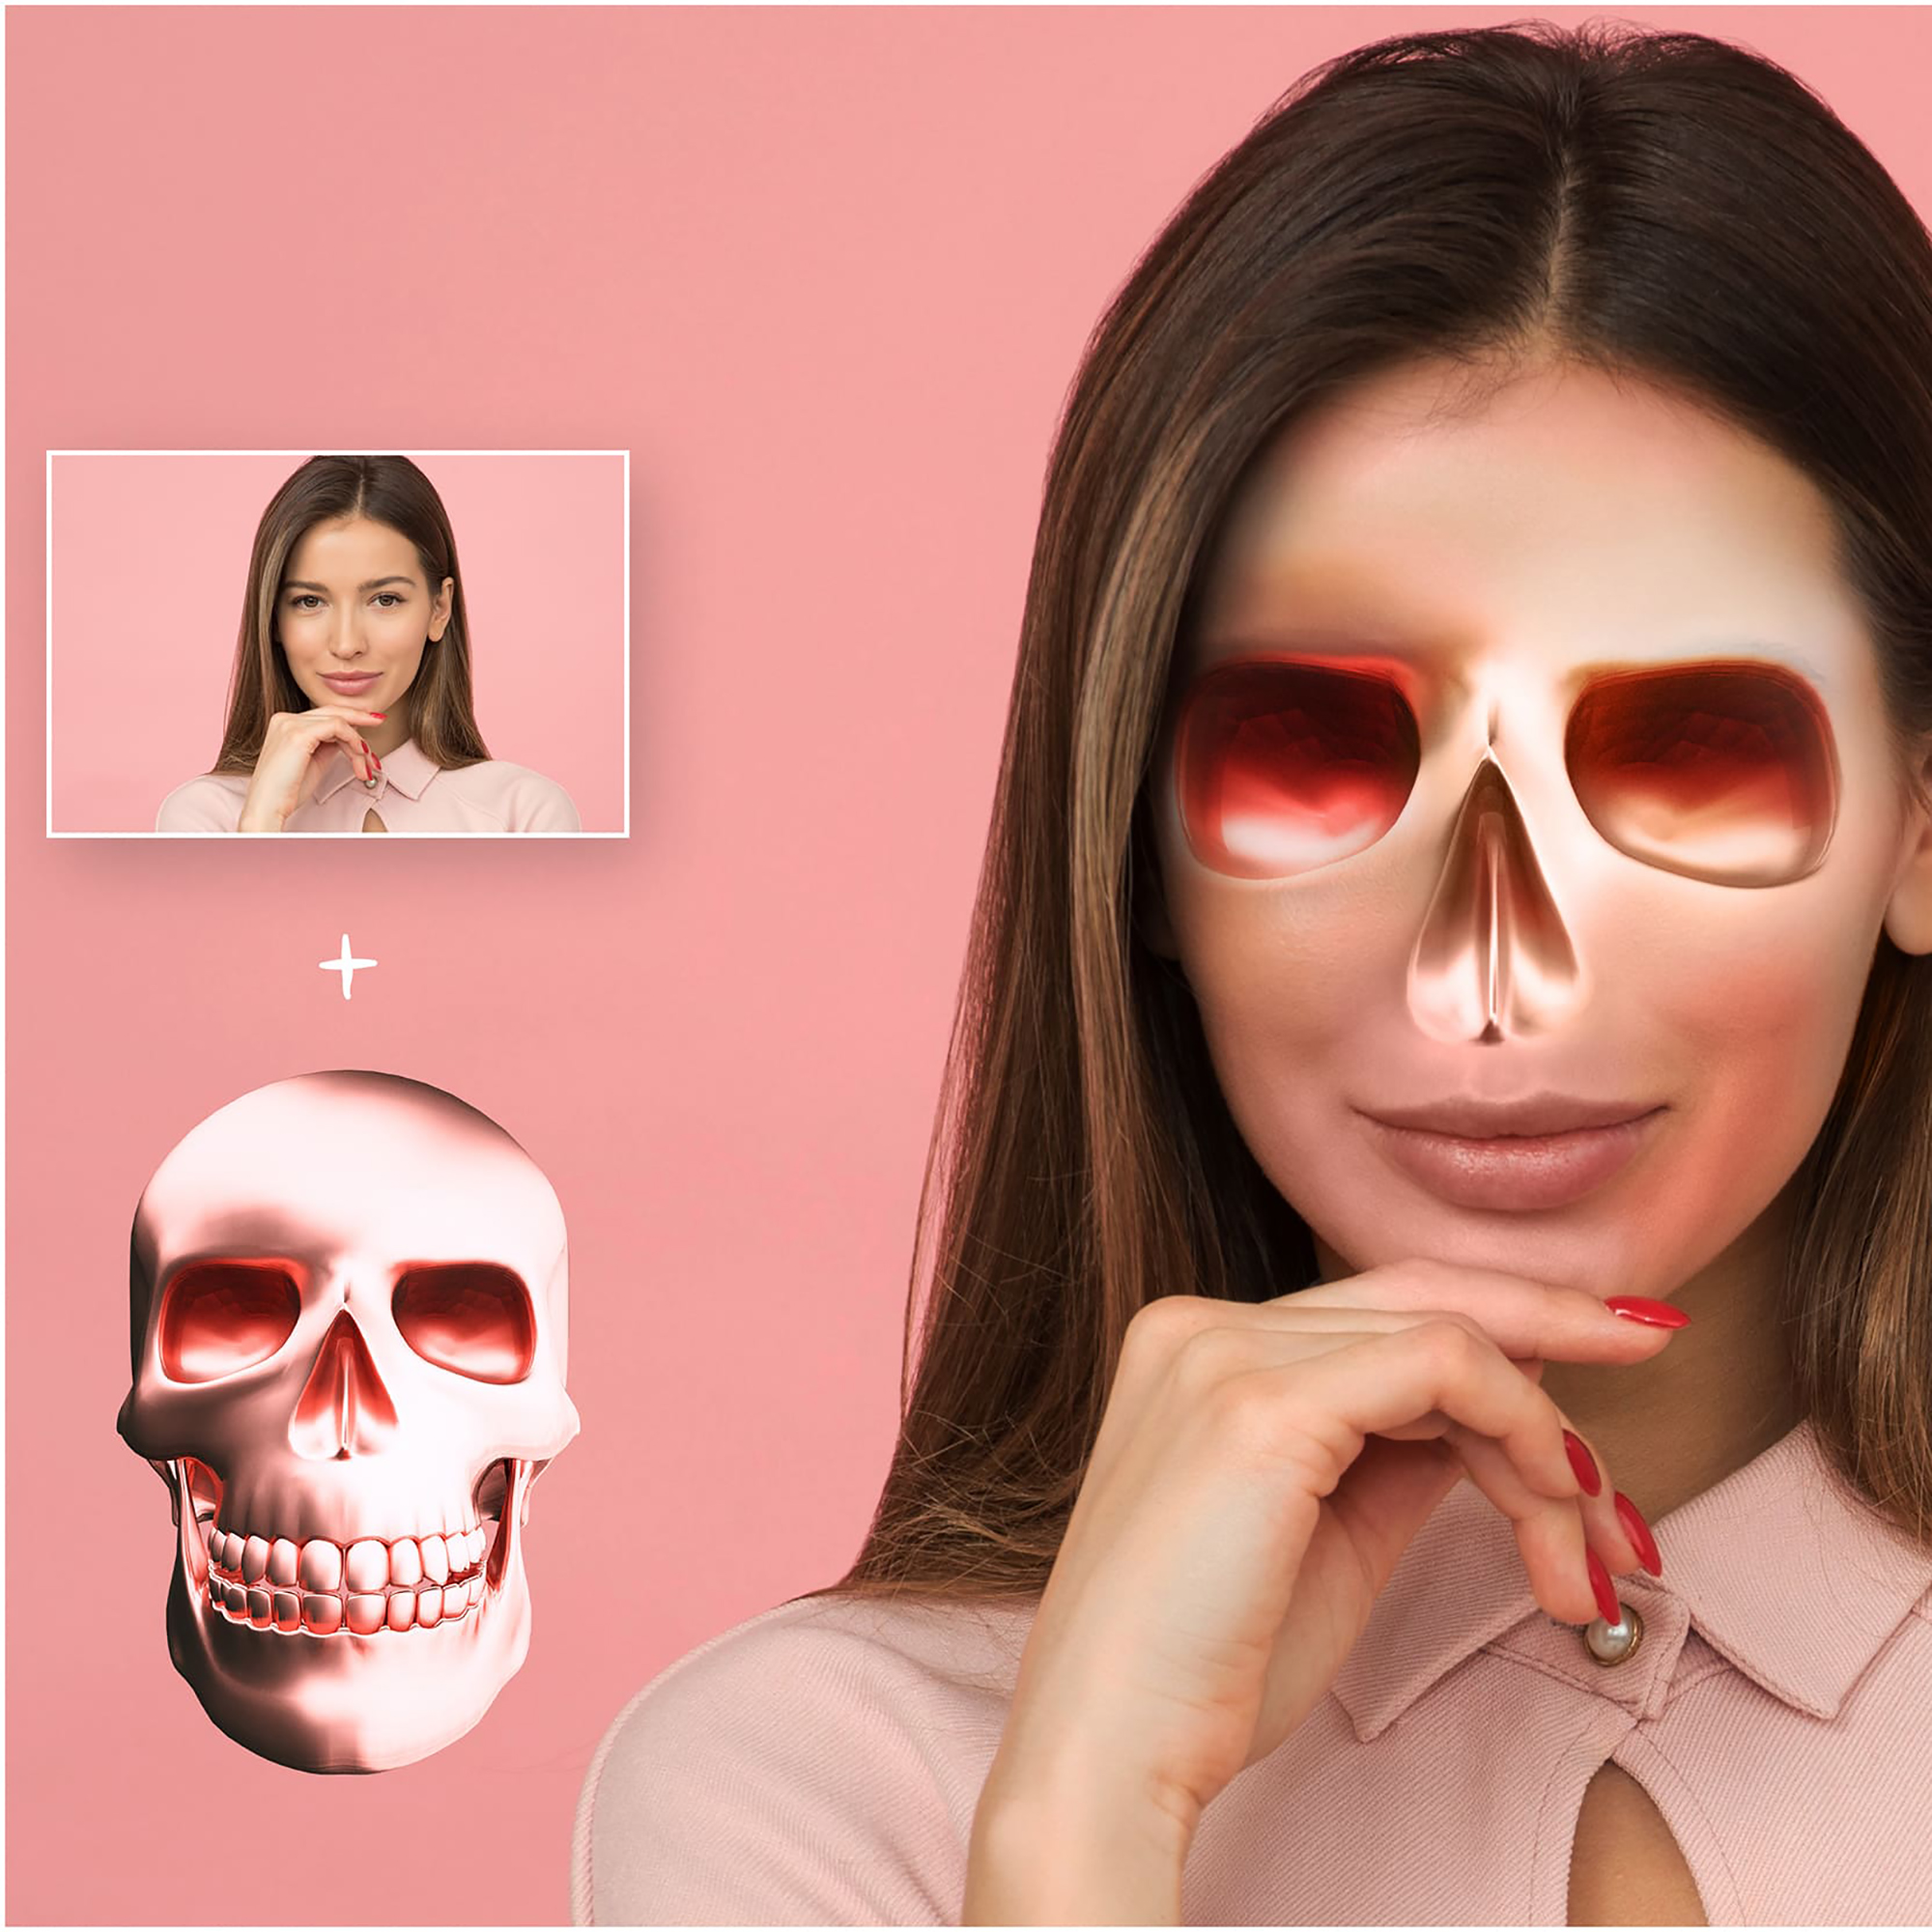 6 Skull PNG Transparent Halloween Overlays - Metallic Skull Effect